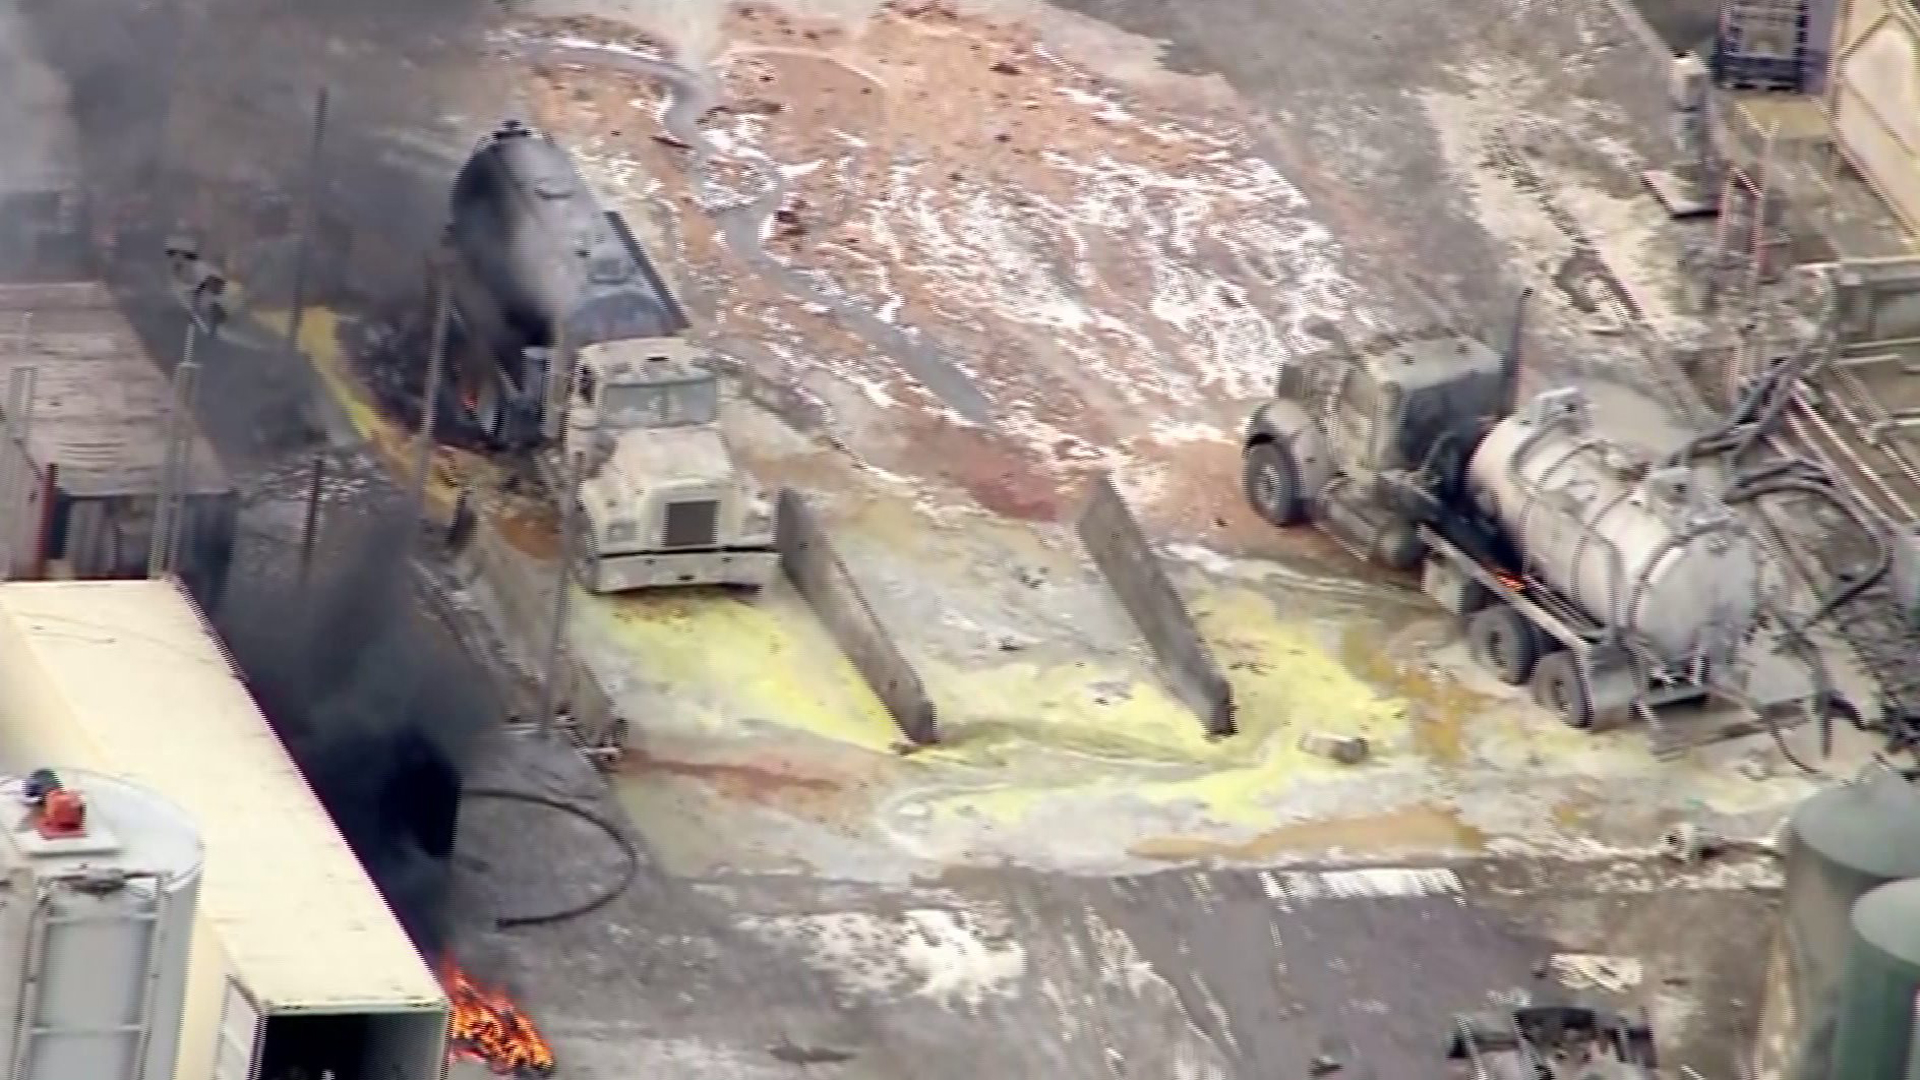 Several people were injured in an explosion at Santa Clara Waste Water Co., in Santa Paula, on Nov. 18, 2014. (Credit: KTLA)